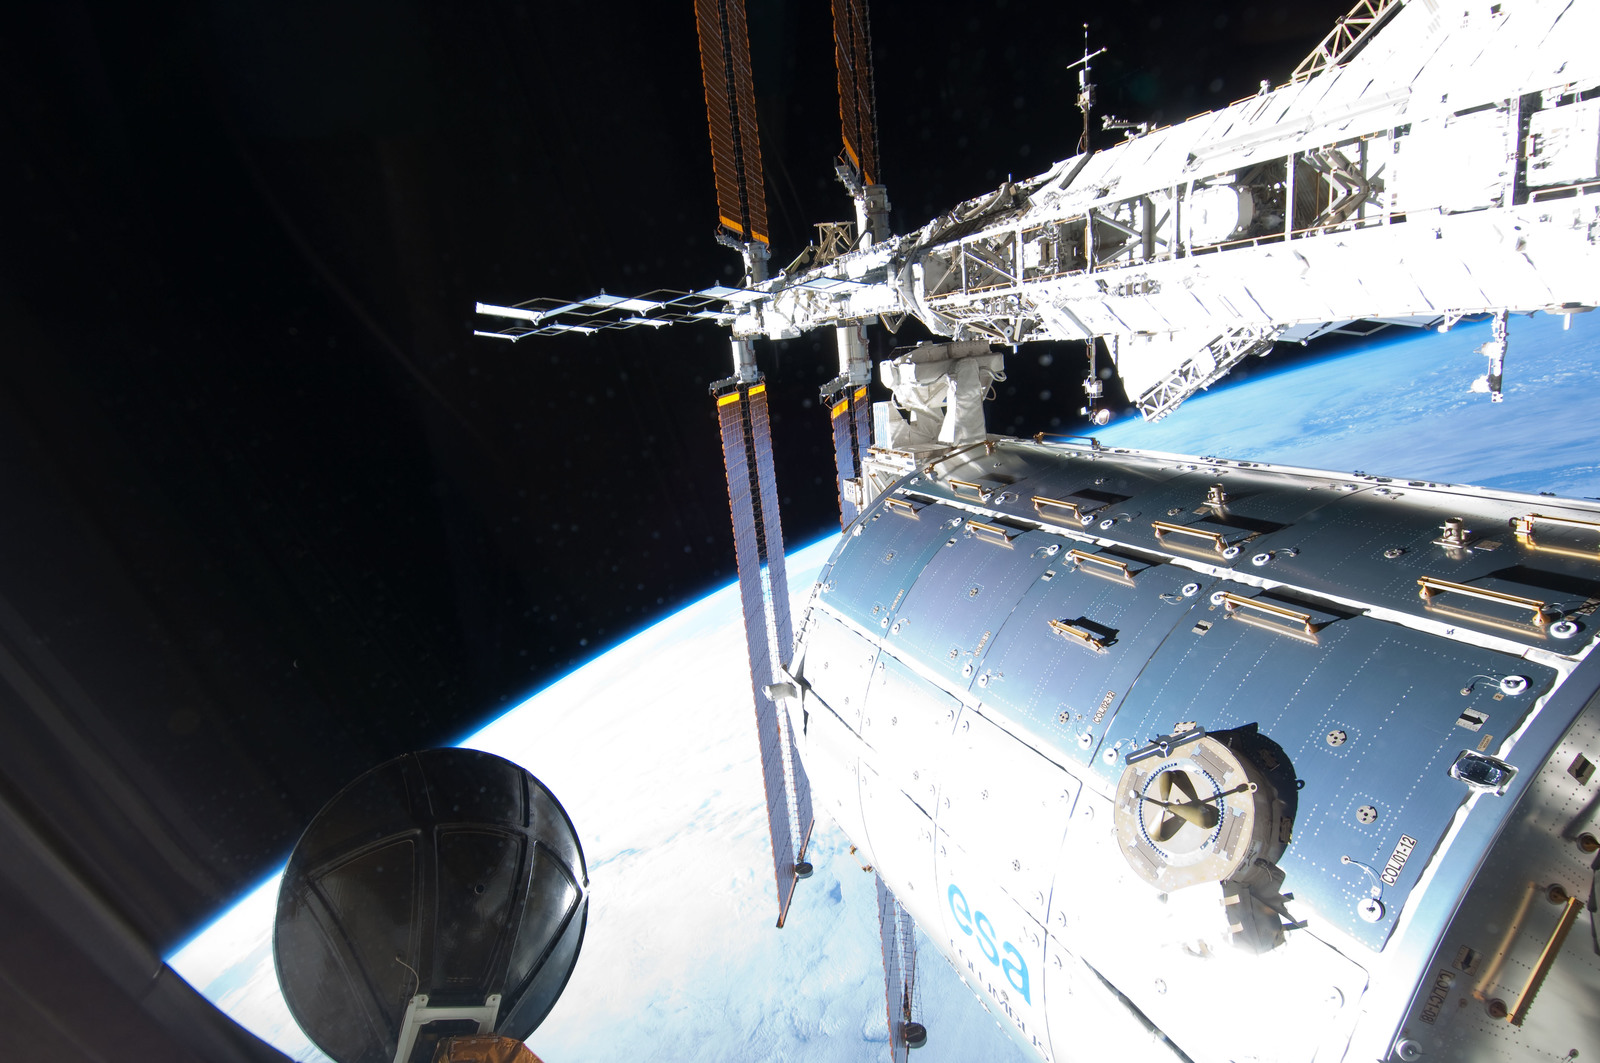 S127E006904 - STS-127 - European Columbus Laboratory during EVA-1 on STS-127 / Expedition 20 Joint Operations